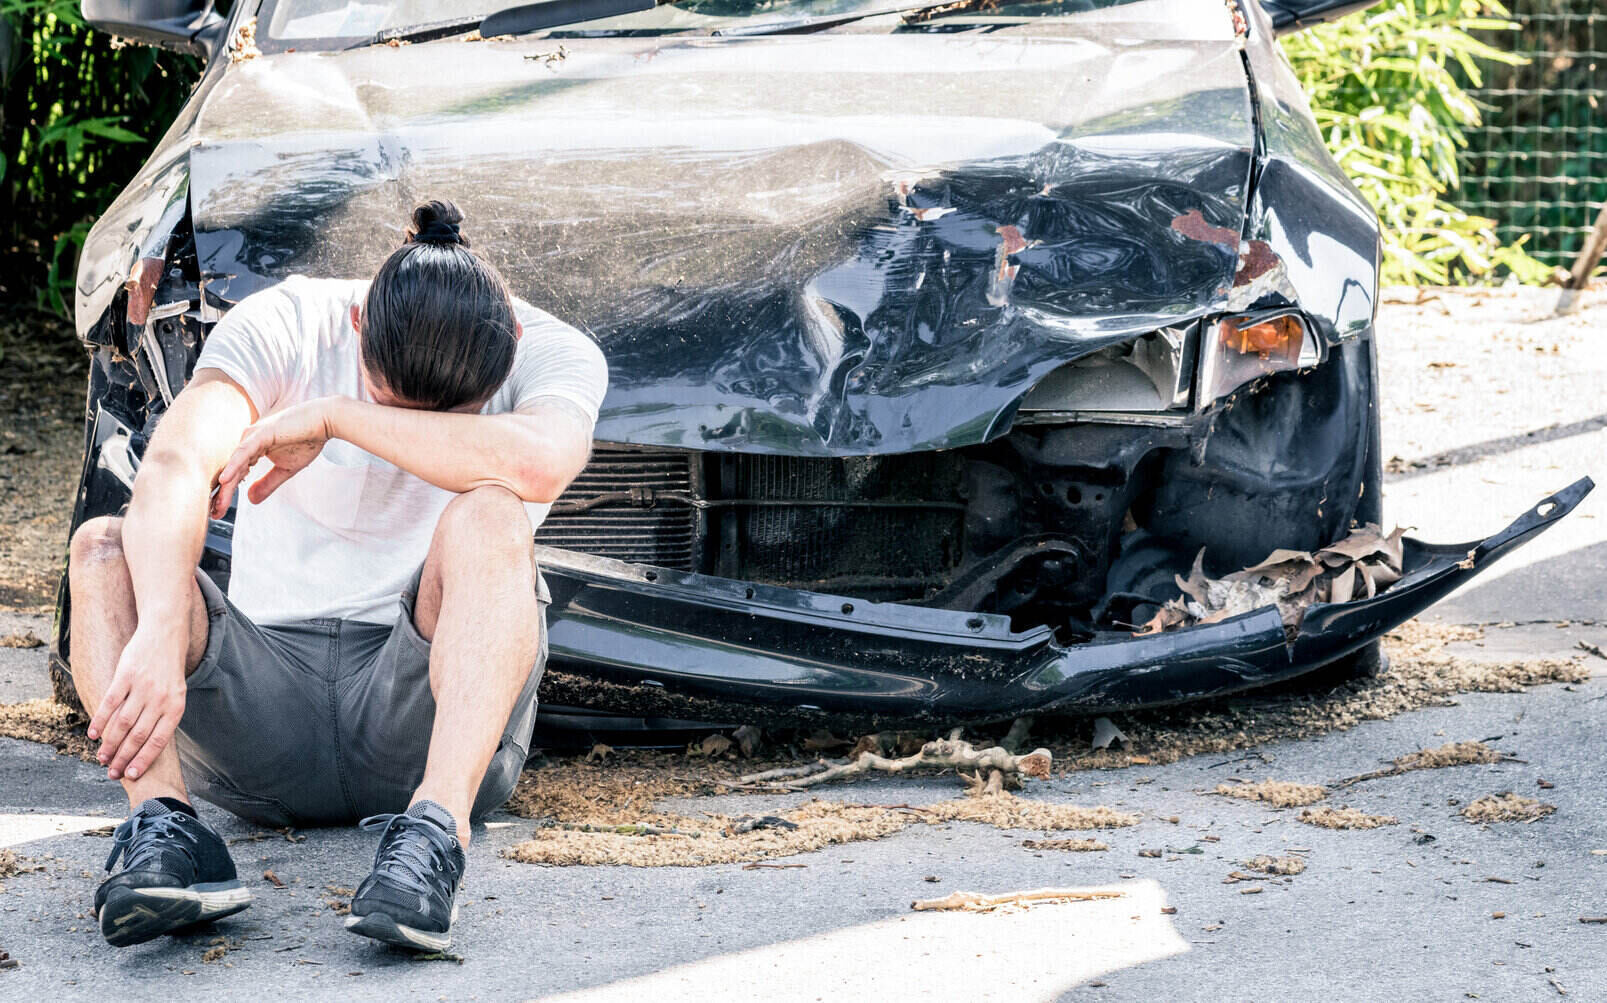 What Type of Compensation can be Recovered in a Wrongful Death Lawsuit?